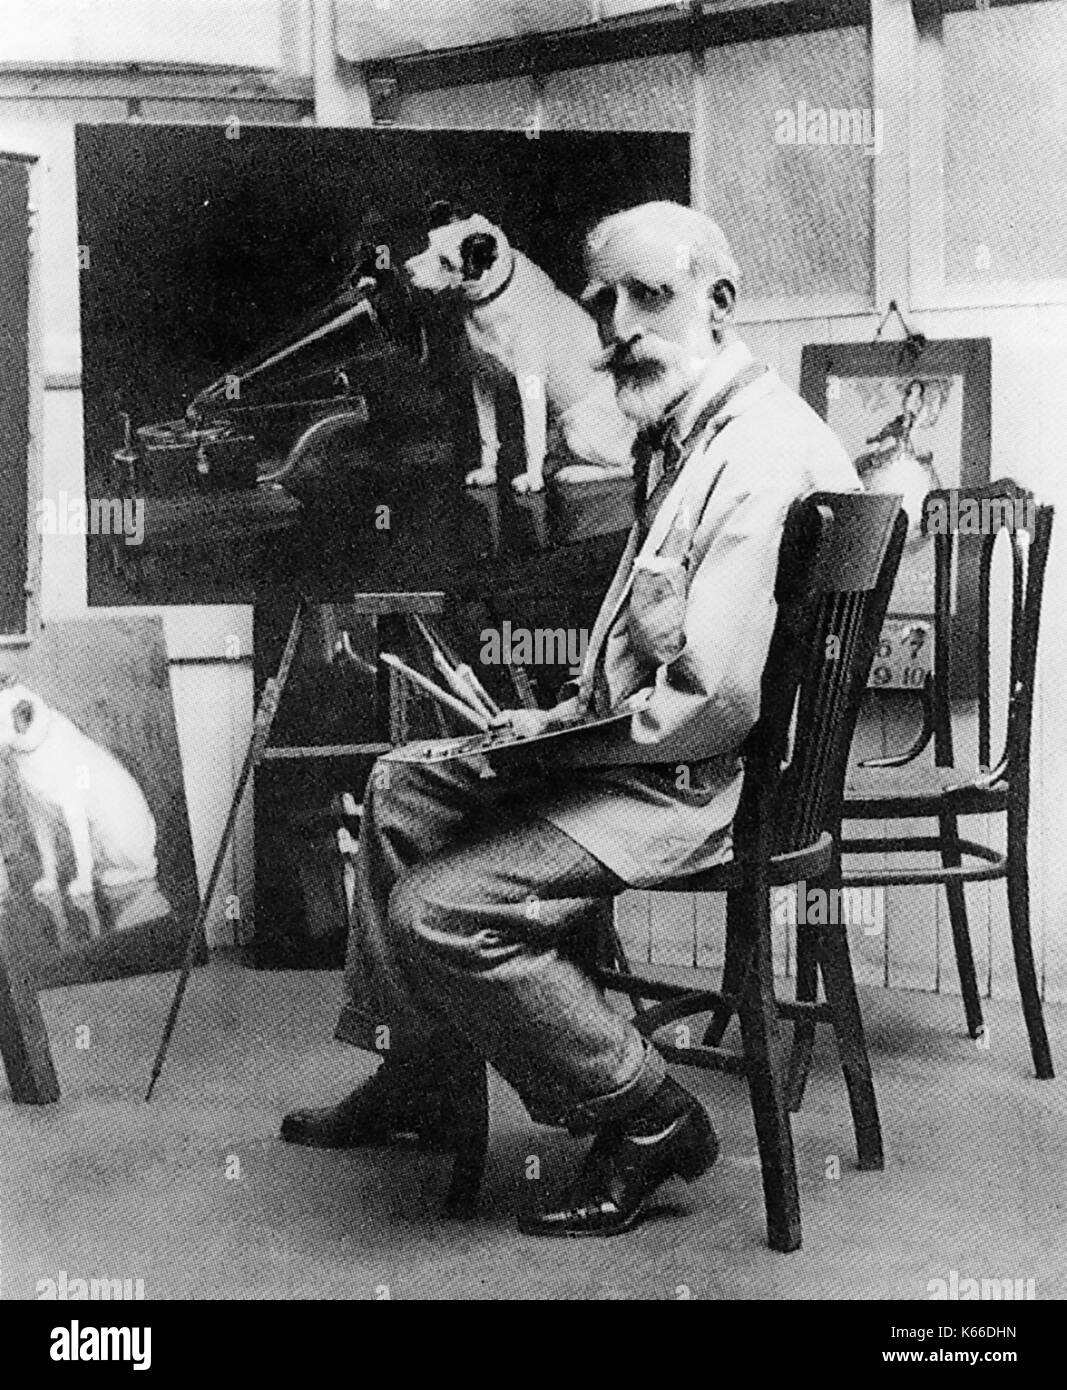 FRANCIS BARRAUD (1856-1924) English artist with a version of His Master's Voice painting which he originally completed in 1899 - Stock Image